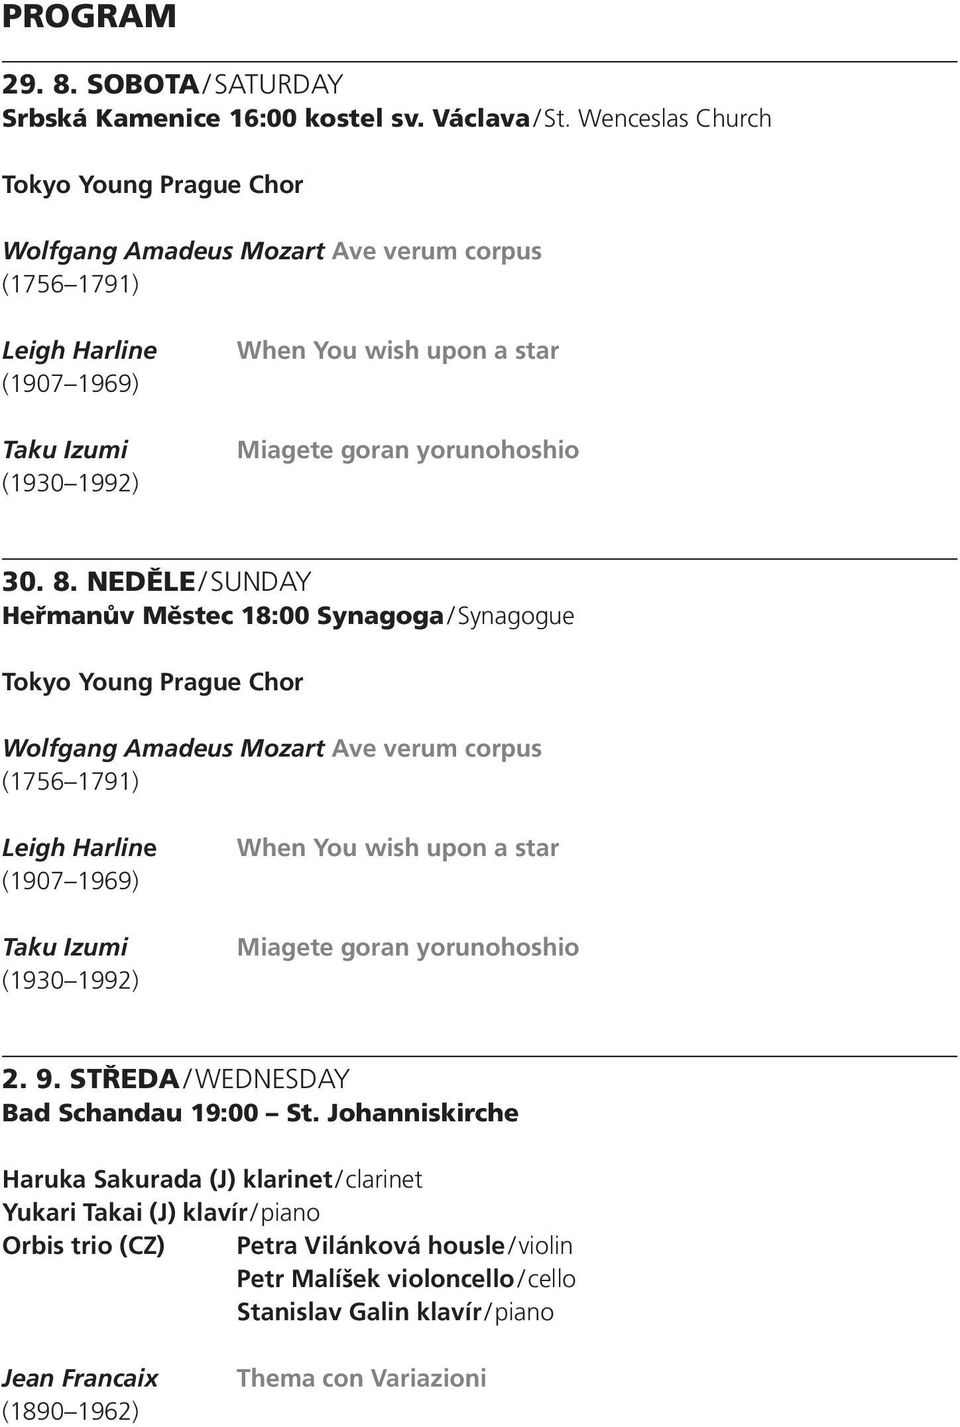 8. NEDĚLE / SUNDAY Heřmanův Městec 18:00 Synagoga / Synagogue Tokyo Young Prague Chor Wolfgang Amadeus Mozart Ave verum corpus (1756 1791) Leigh Harline (1907 1969) Taku Izumi (1930 1992) When You